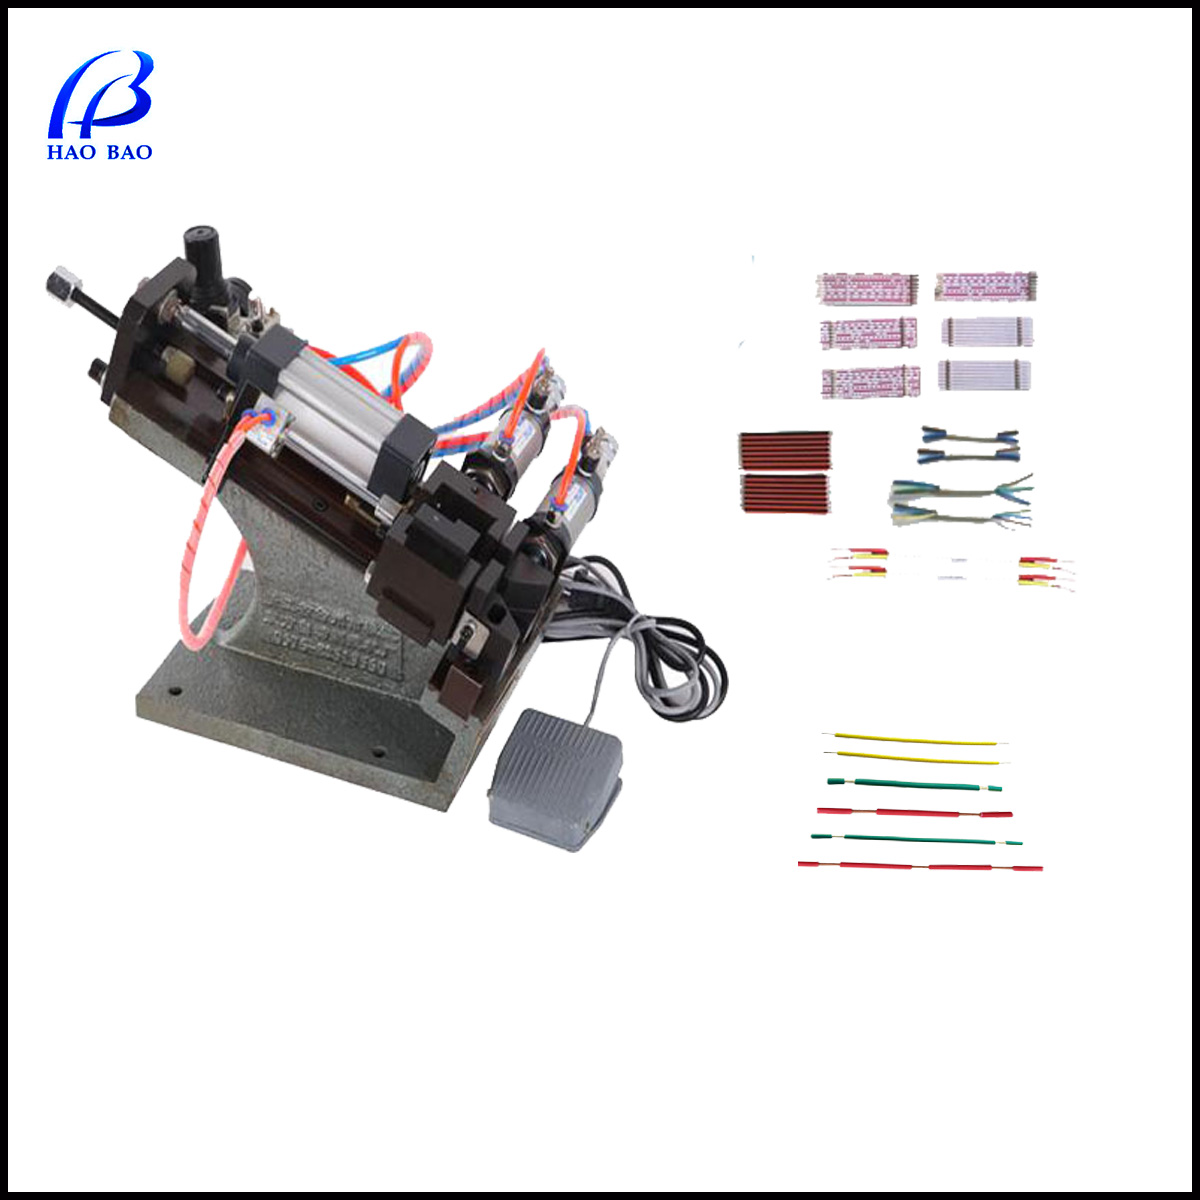 HW-A305 flat cable Cutting Machines Cable Stripping Machine Stripping Diameter: 1-9mm Cable Making Equipment for Phone Wire